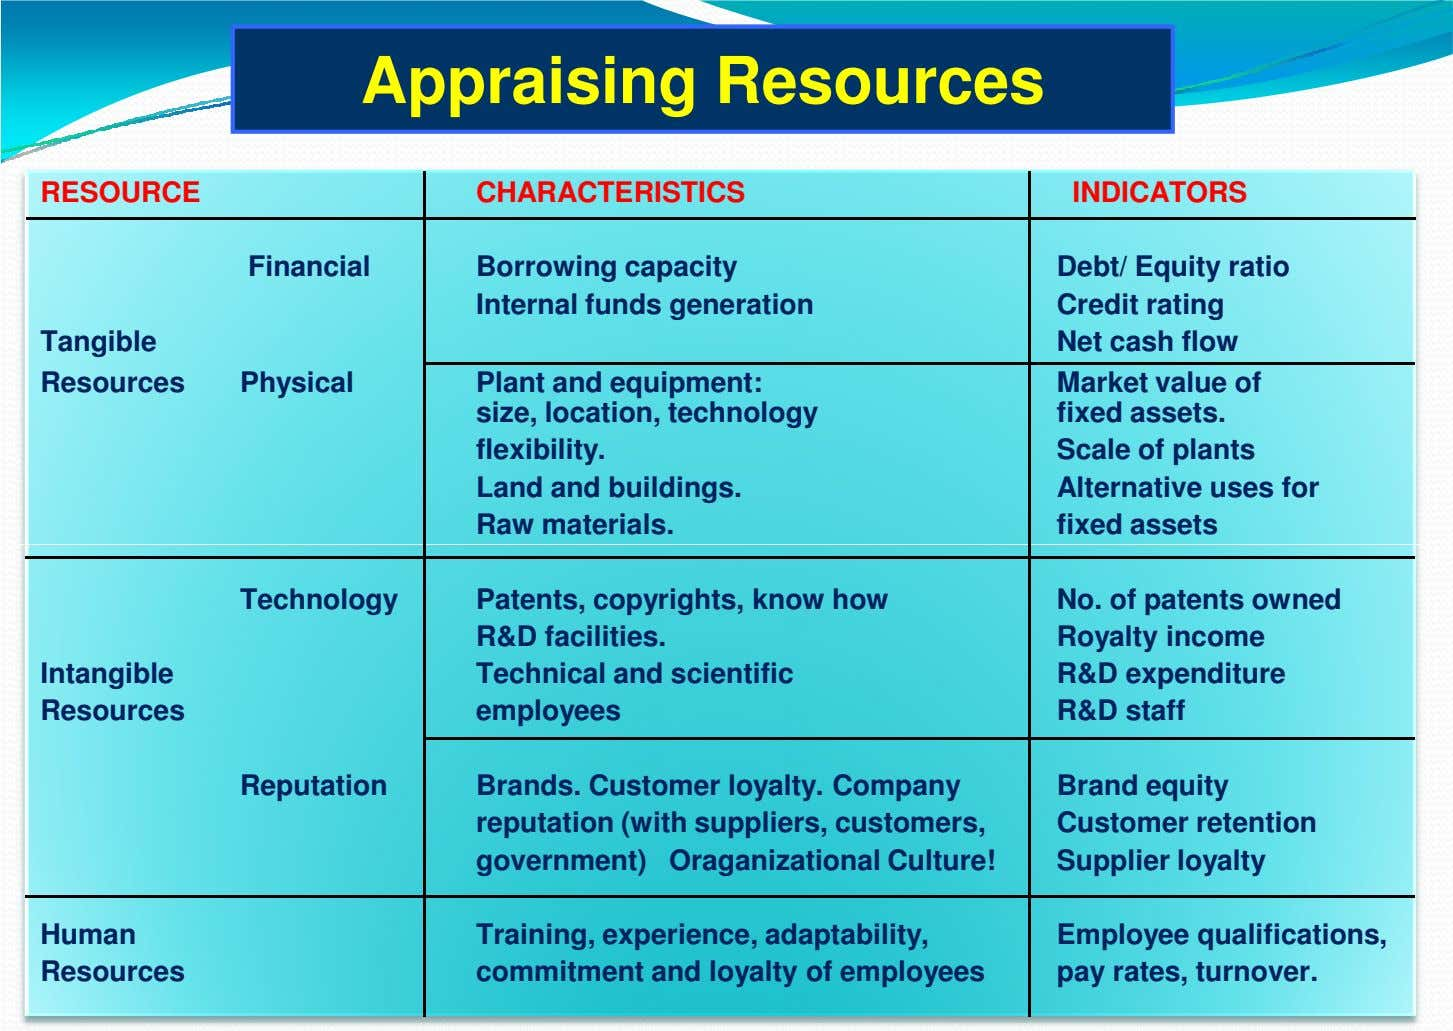 Appraising Resources RESOURCE CHARACTERISTICS INDICATORS Financial Borrowing capacity Internal funds generation